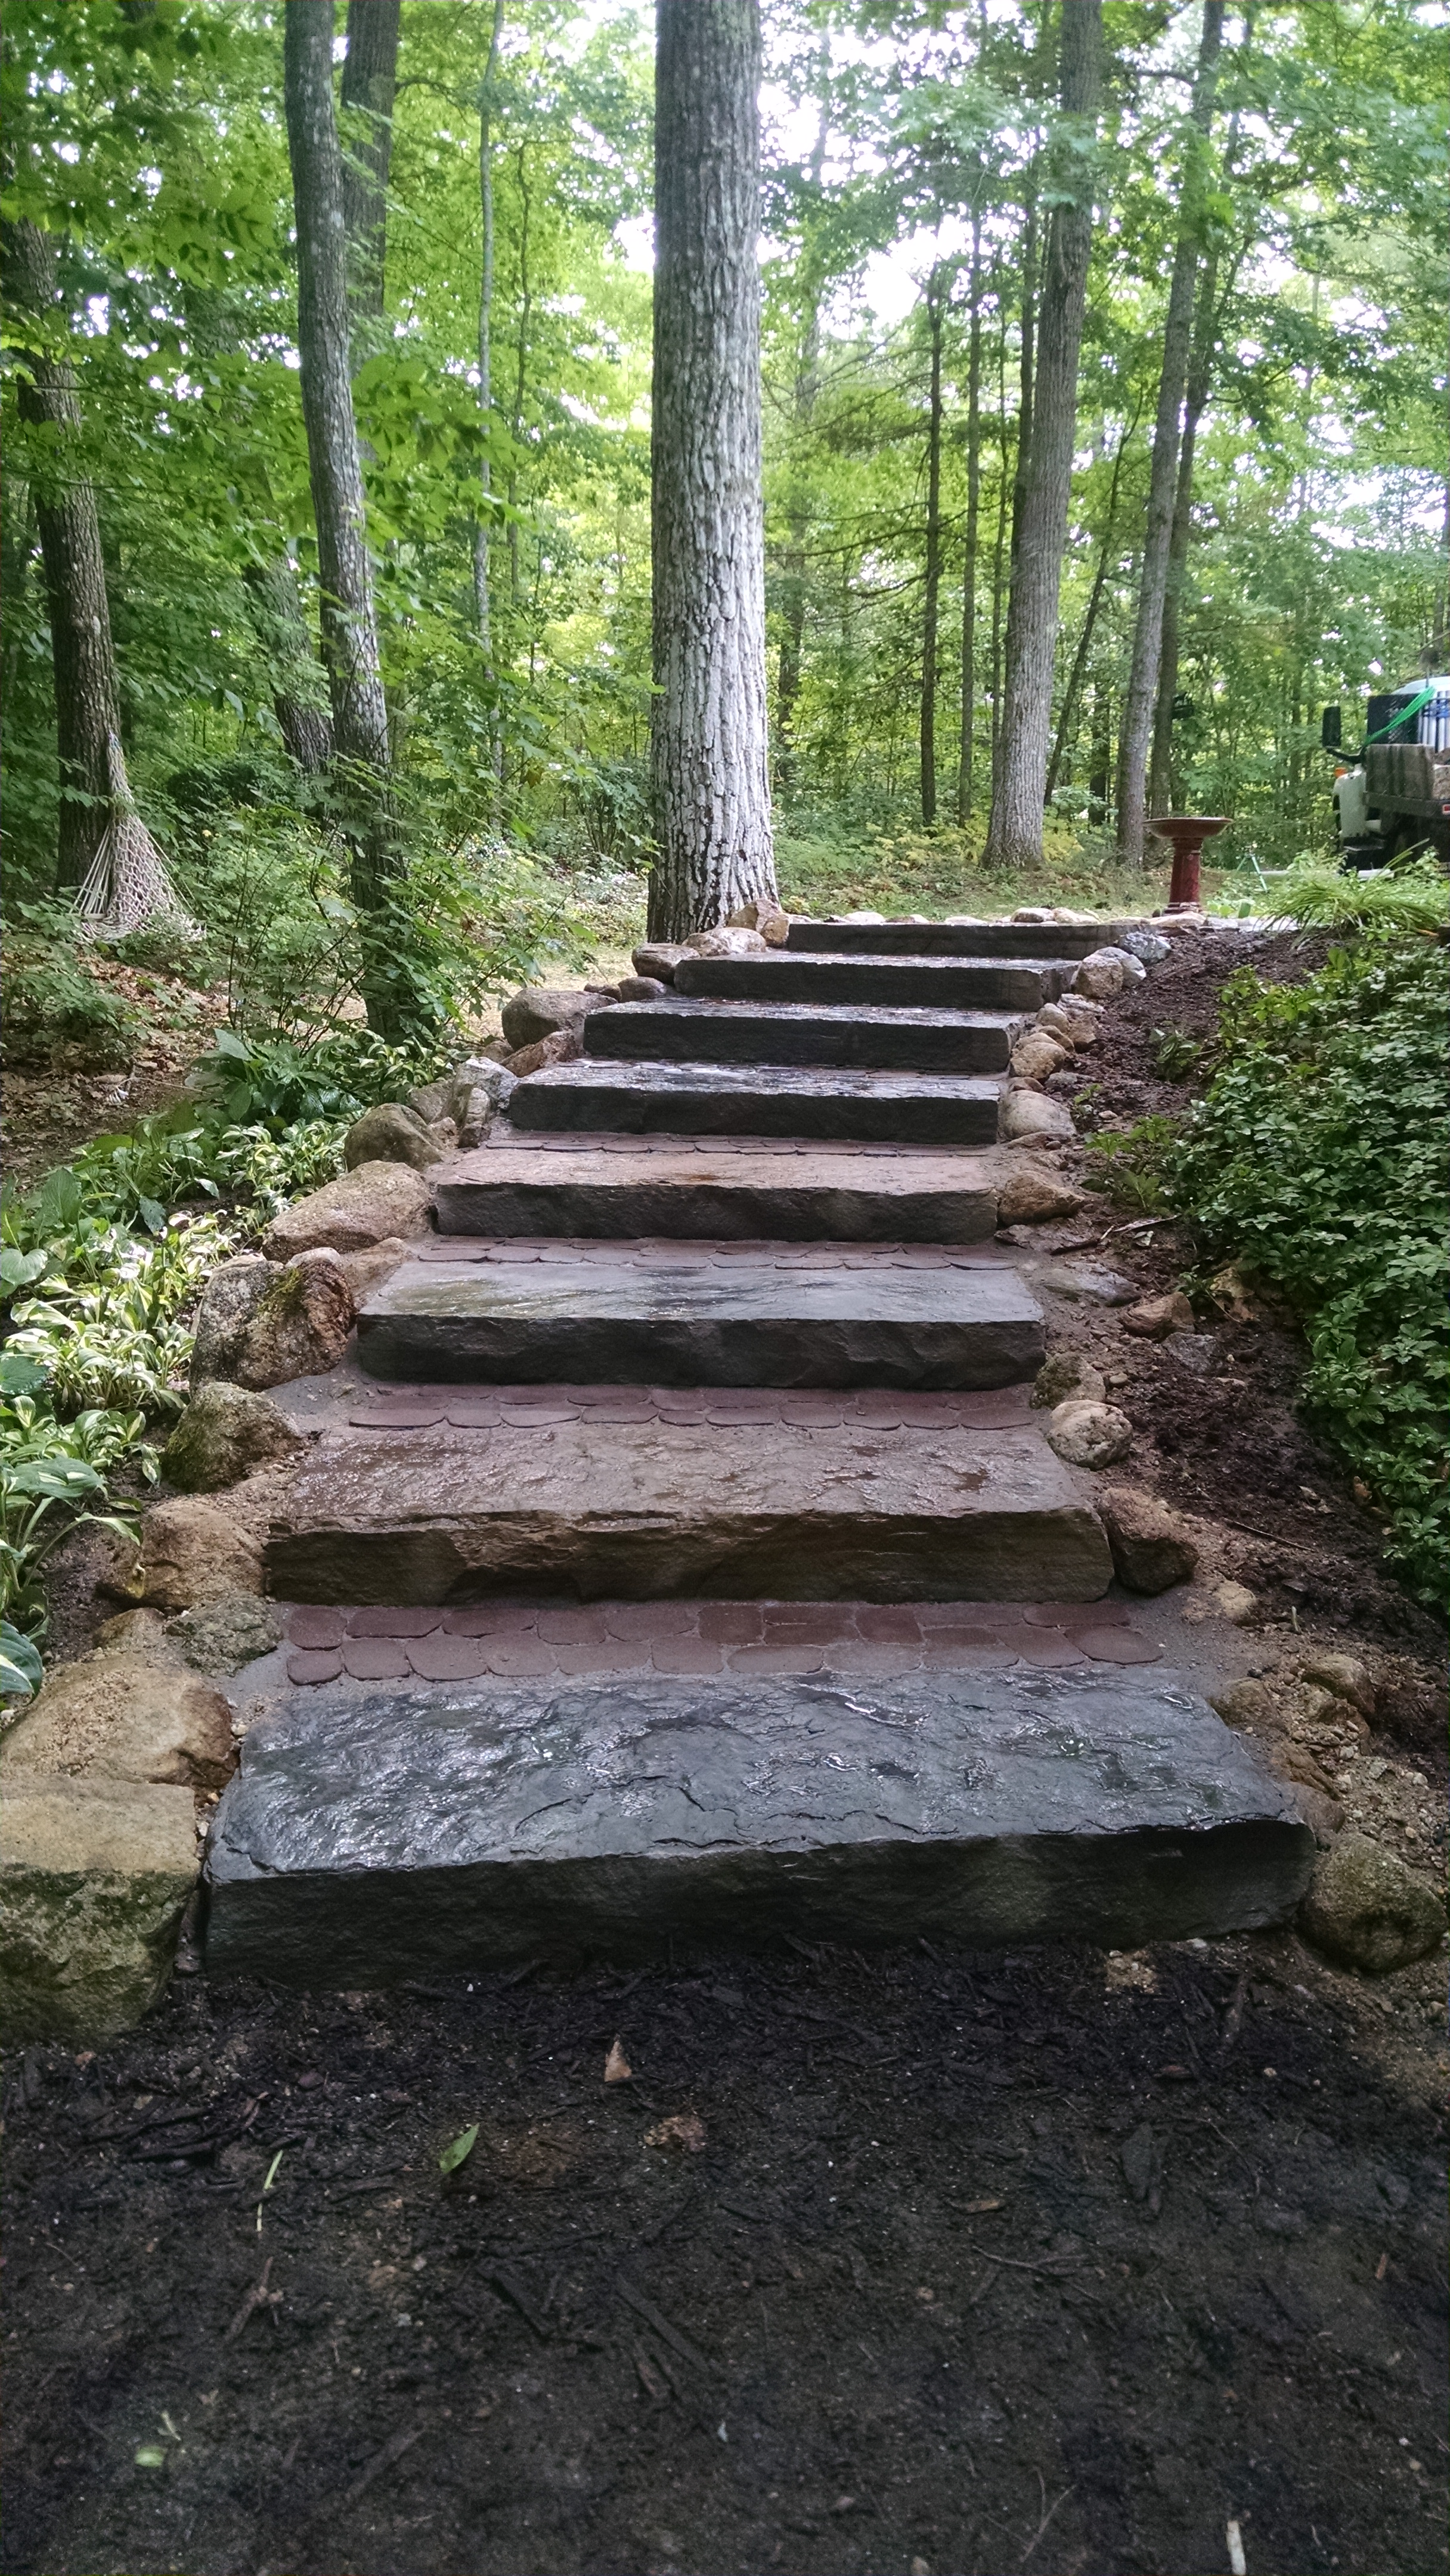 A highly erosive, worn-out path to LIttle Sebago Lake in Gray, Maine, was transformed into a functional, non-eroding, safe and durable staircase using natural stone steps reinforced with rocks and shade-tolerant ground-cover vegetation. PHOTO: Bourne Landscaping